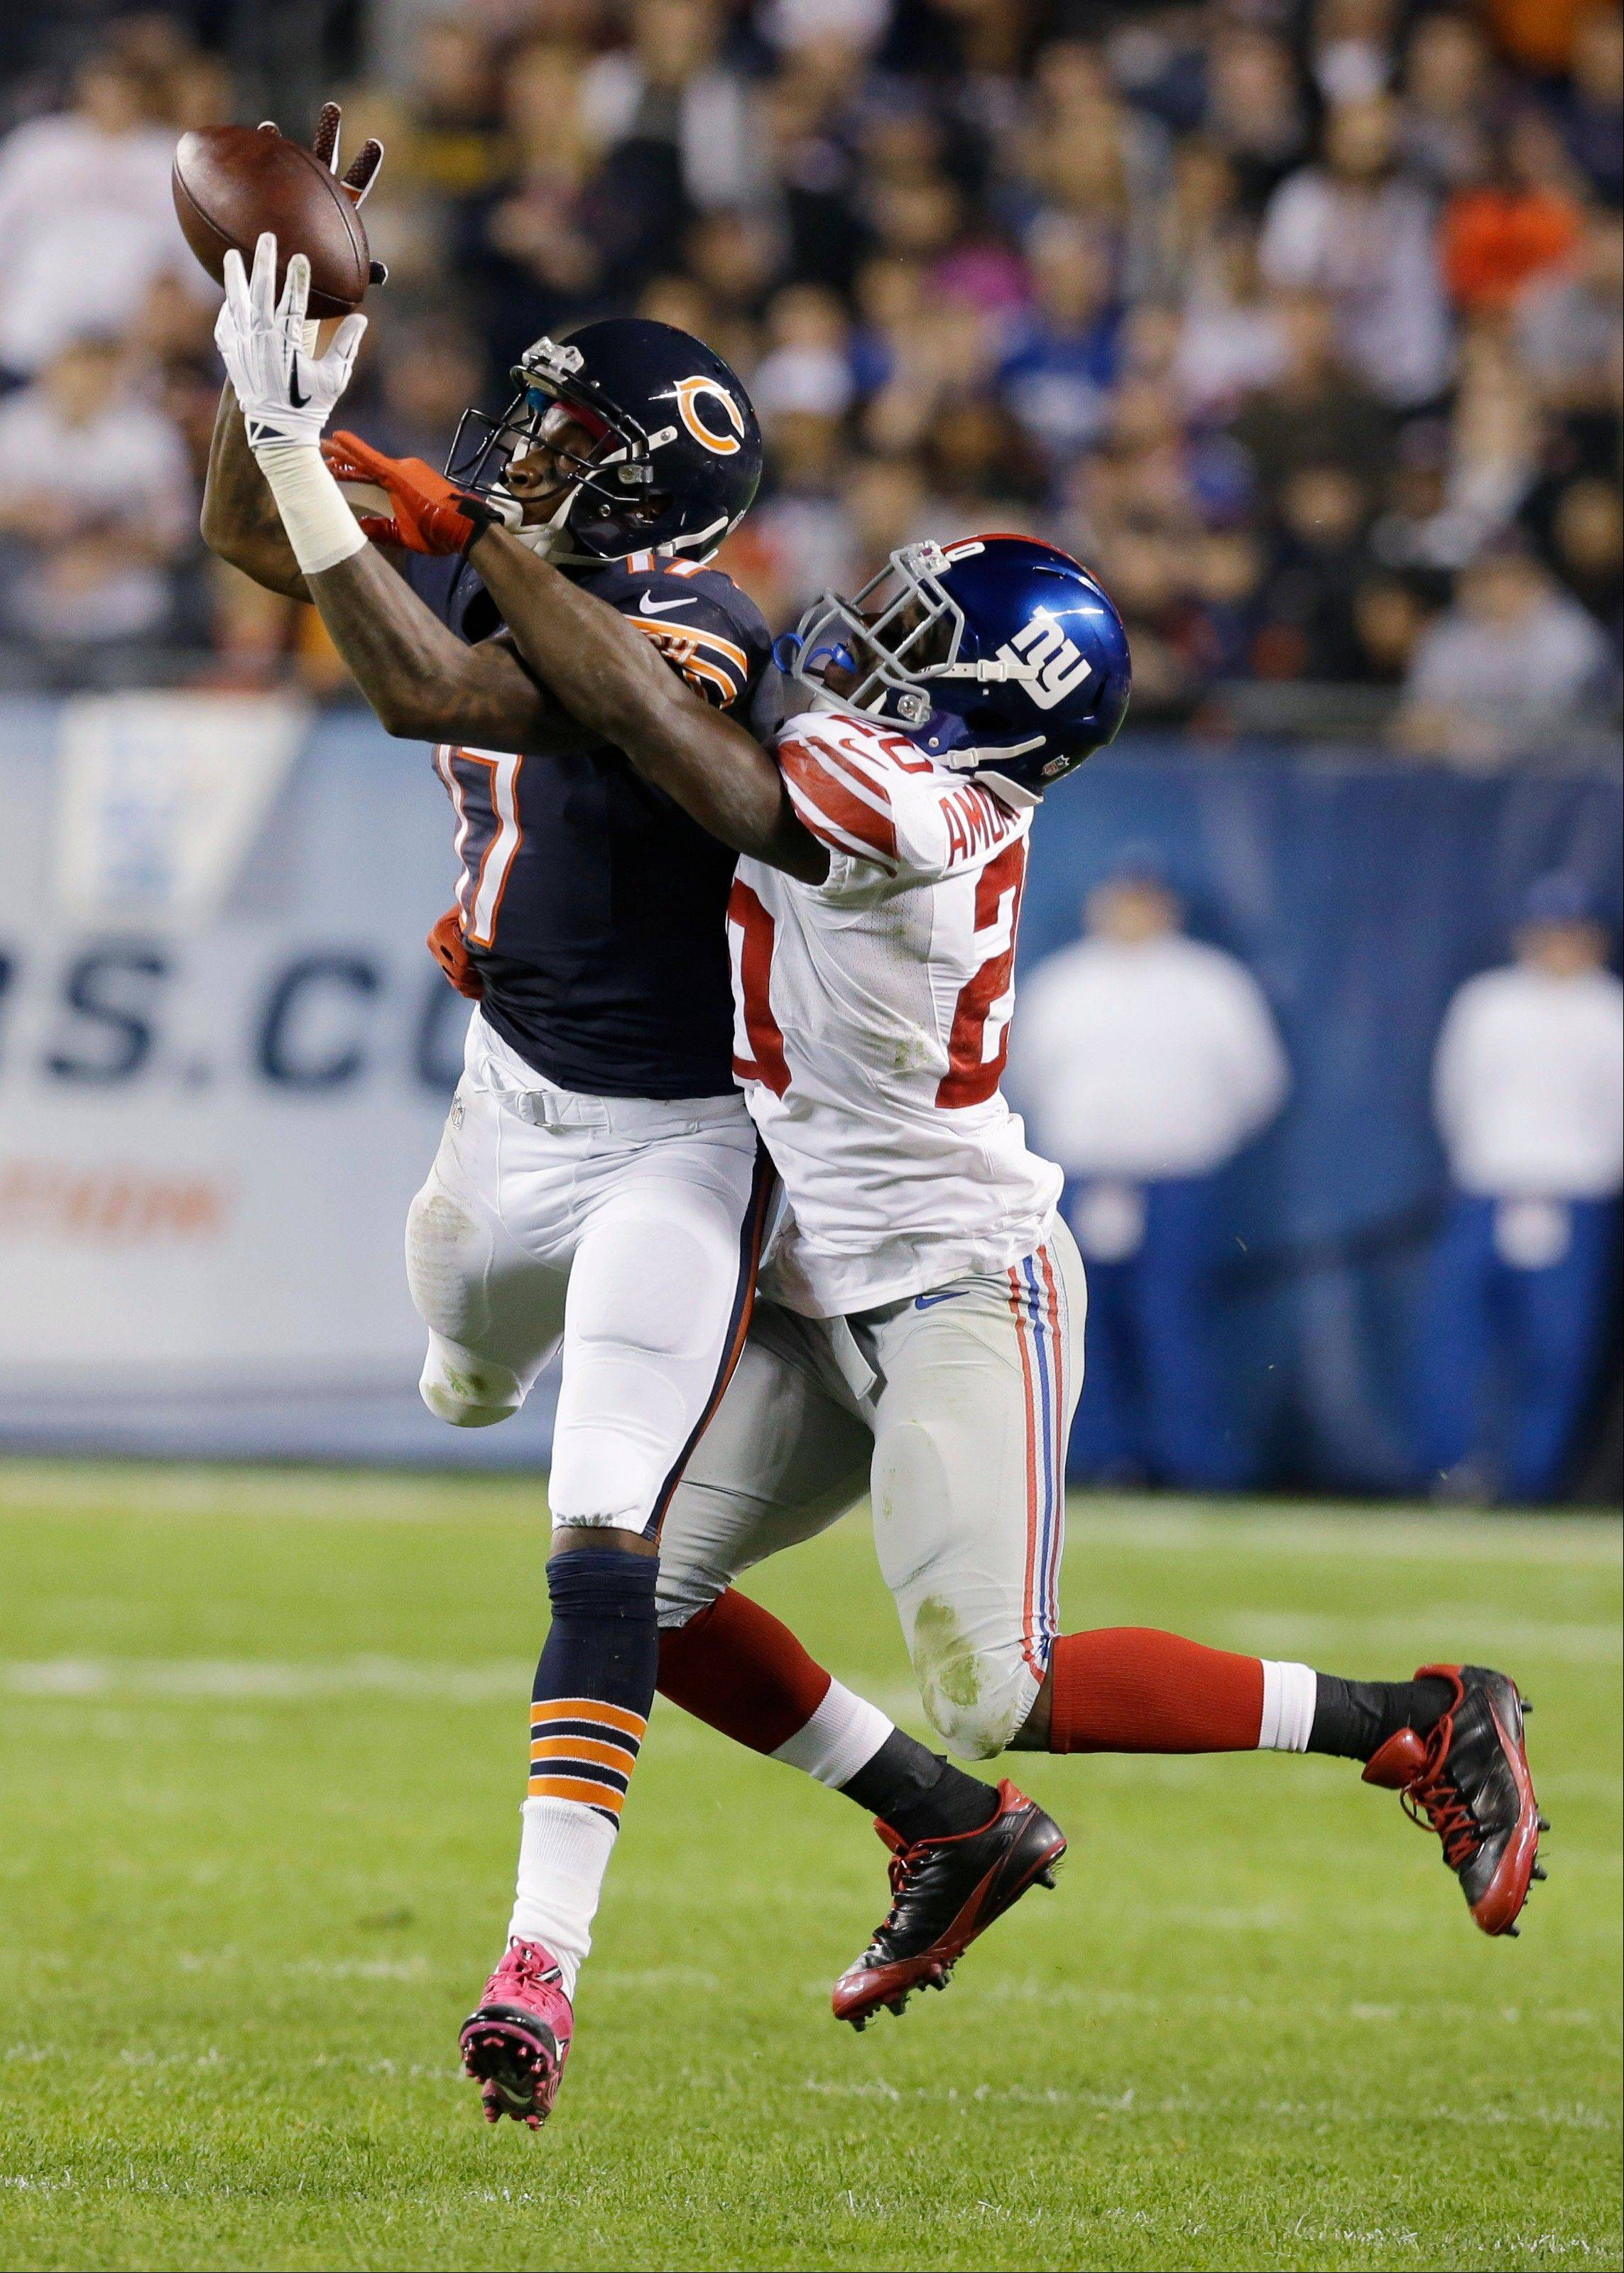 Dramatic win leaves Bears unsatisfied